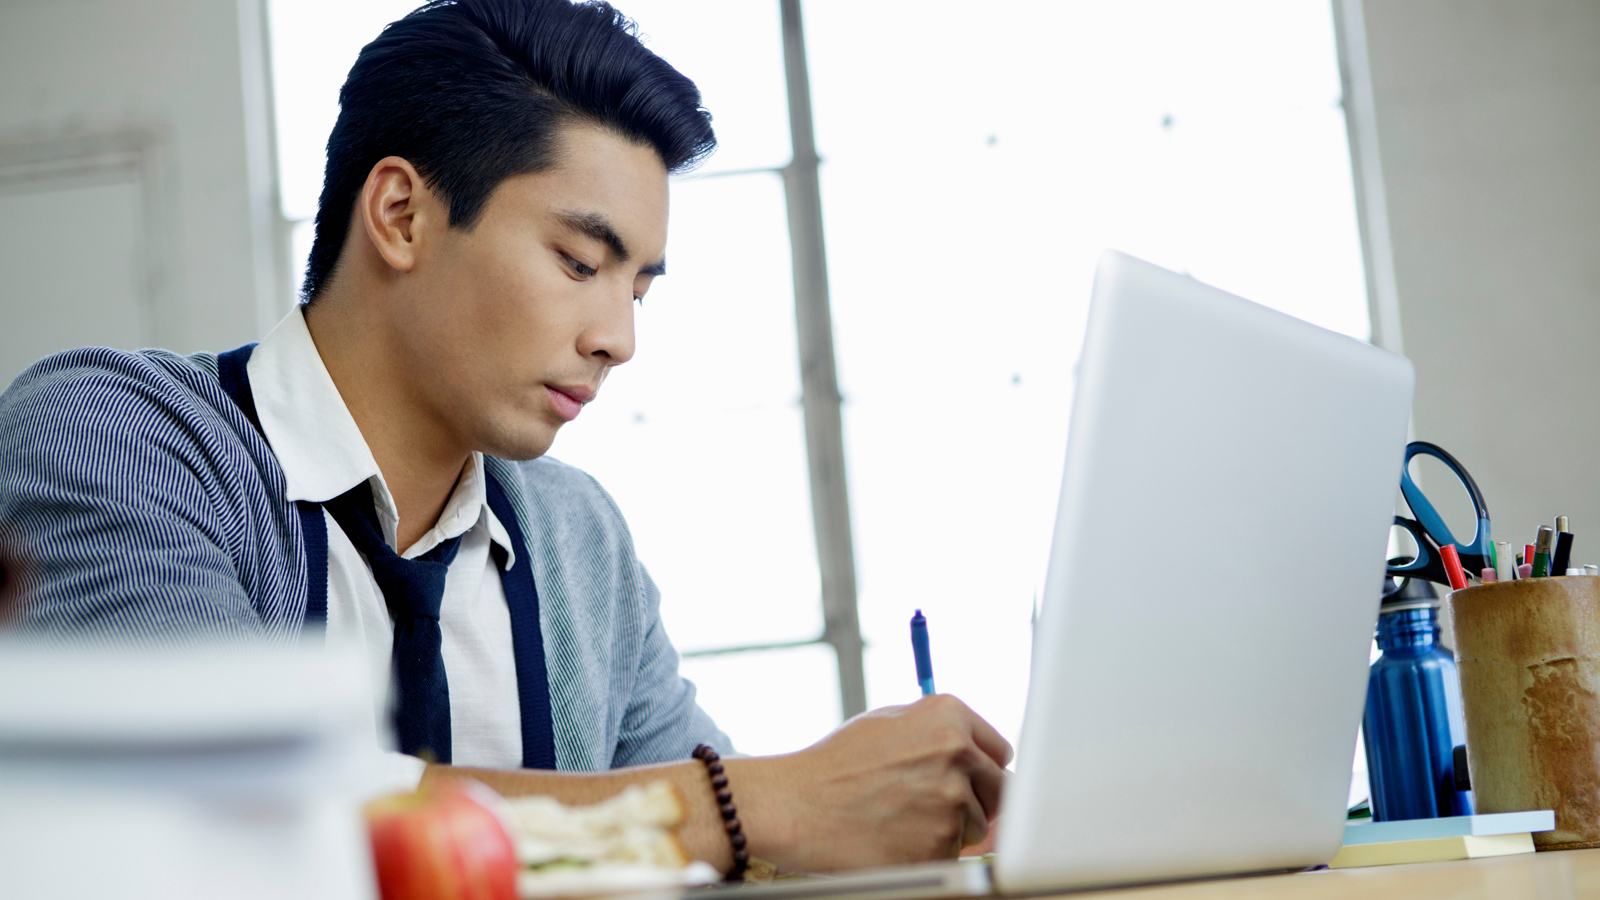 Man in front of laptop writing down notes